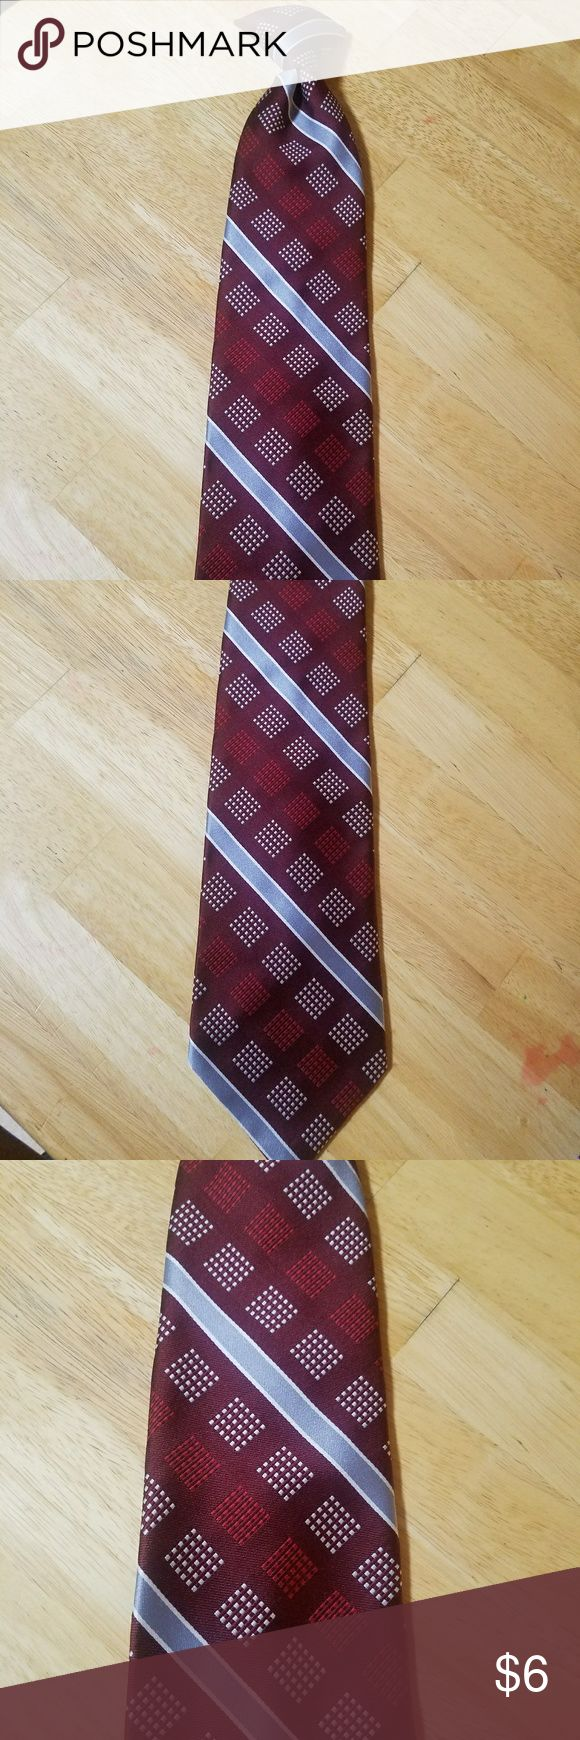 Burgundy Red and Grey clip on tie Burgundy Red and grey clip on tie.  Bundle for discount and save on shipping Accessories Ties